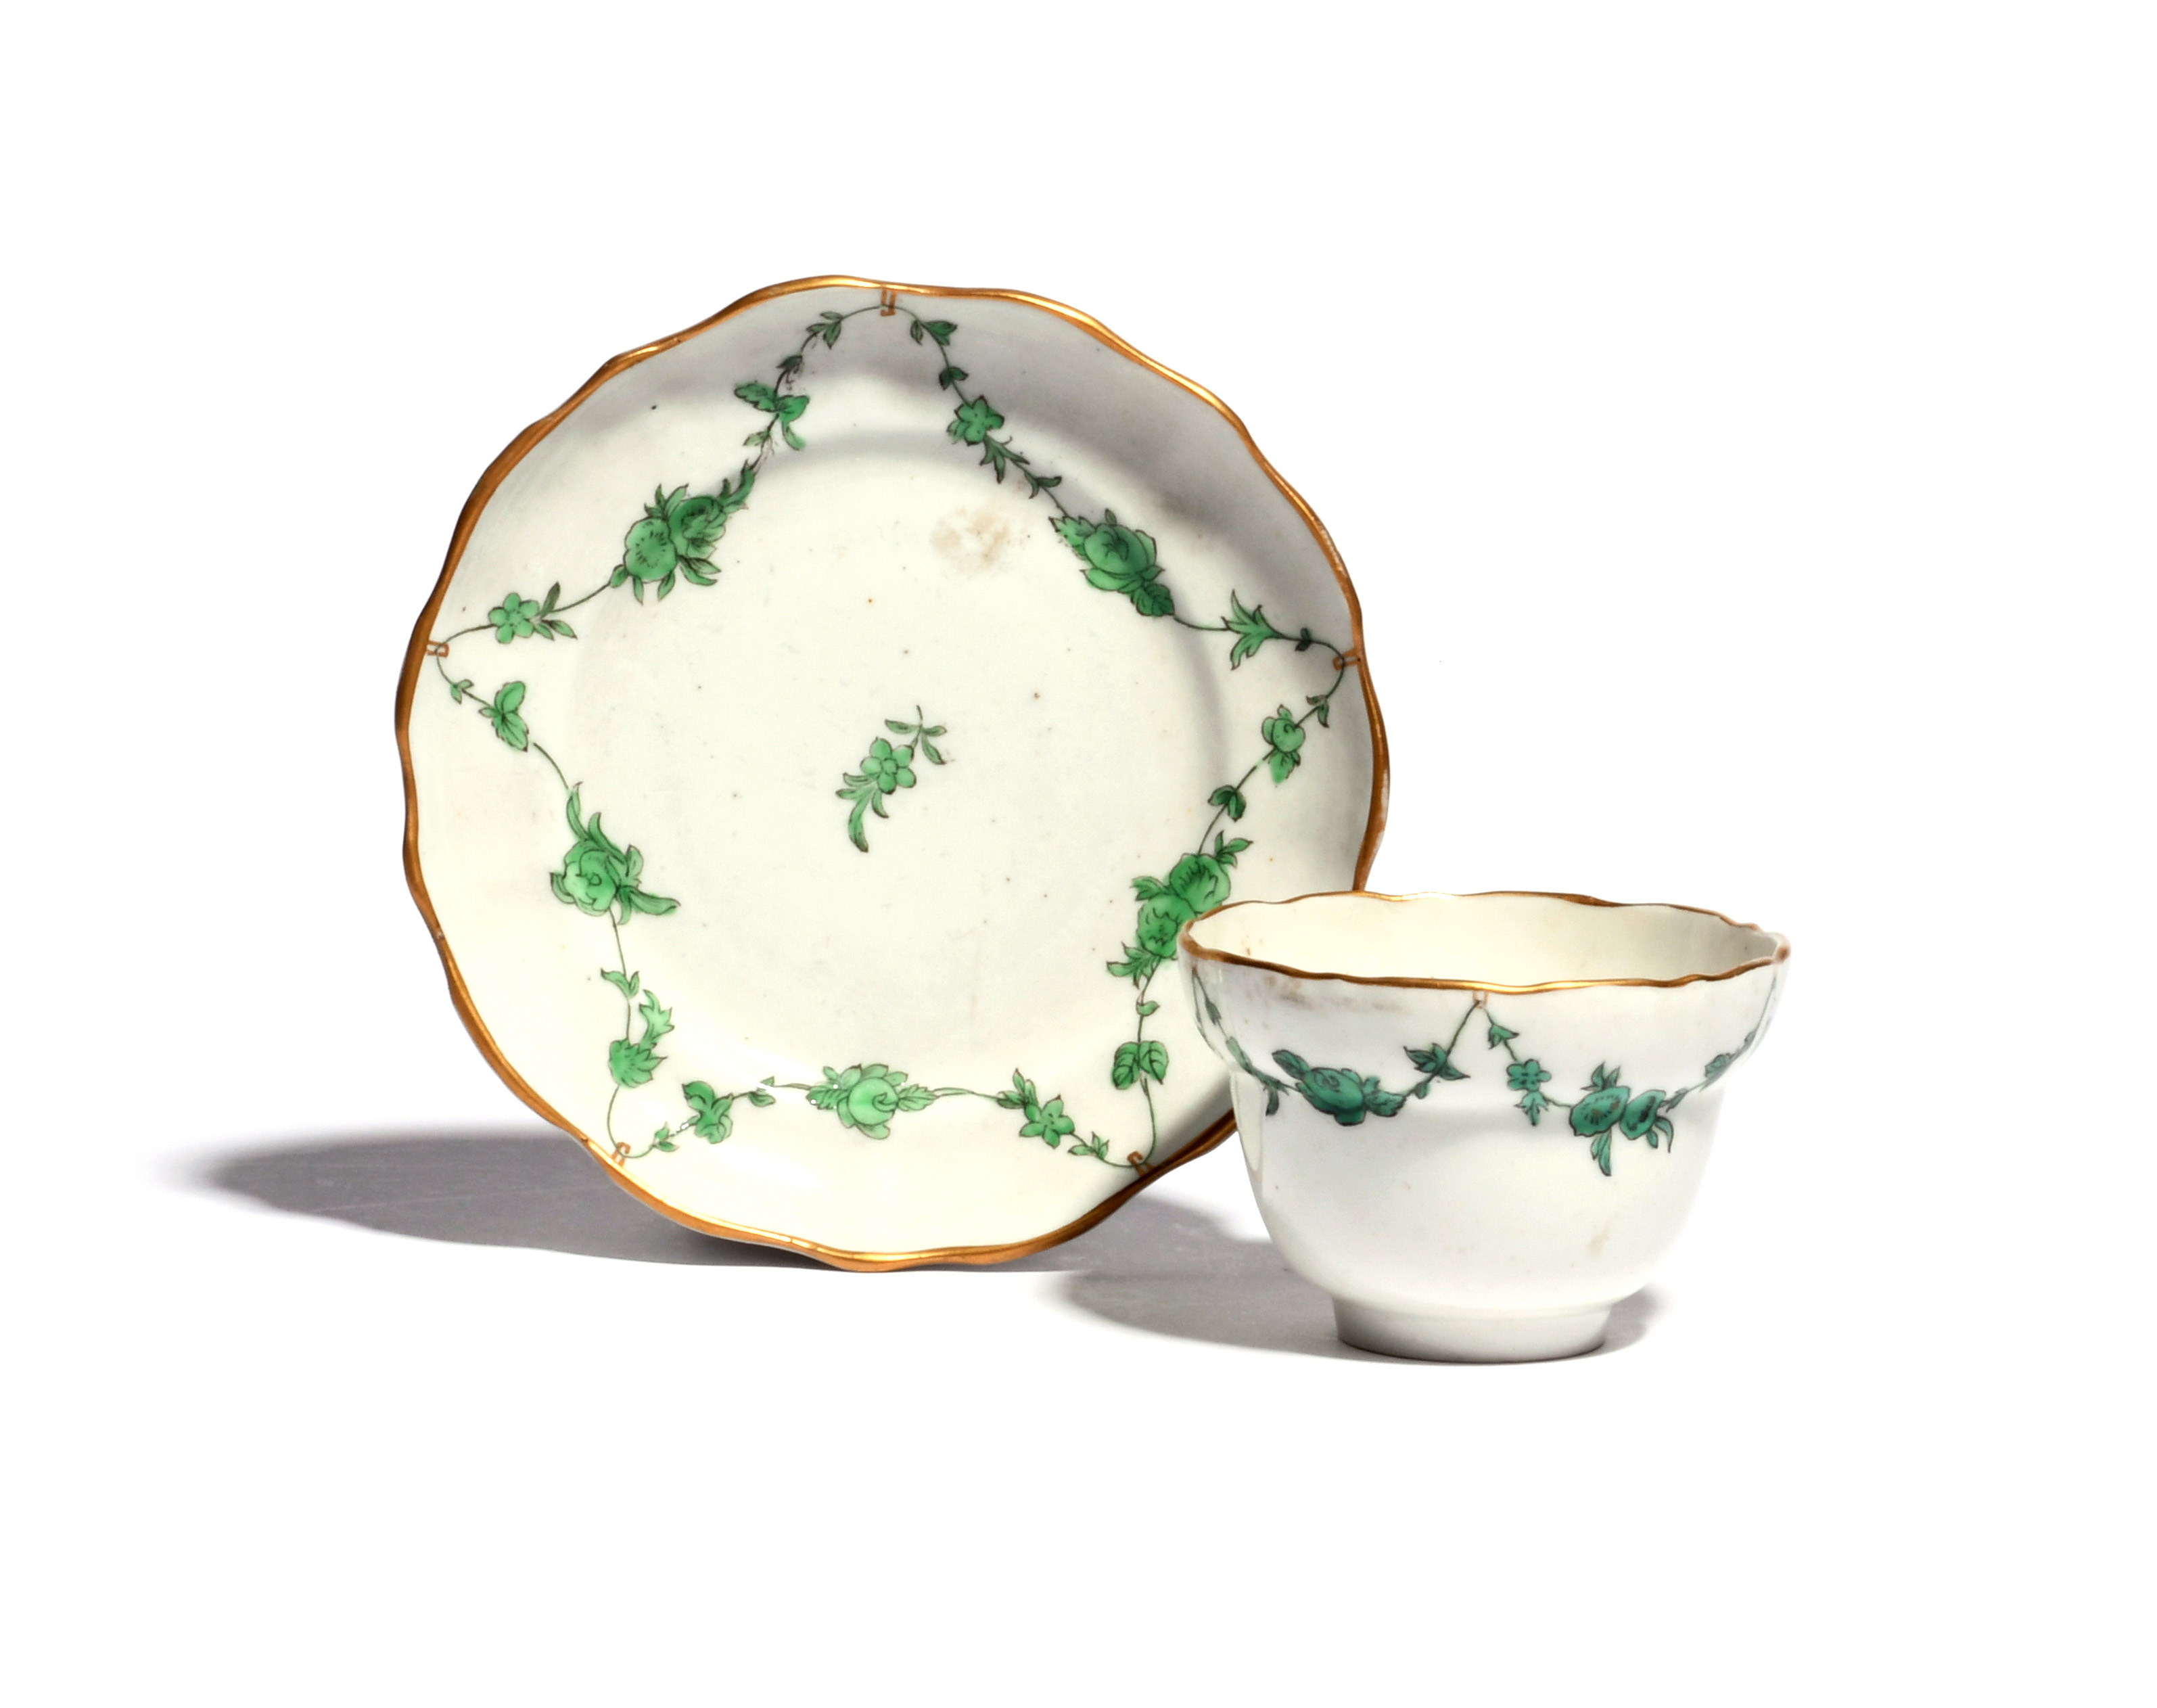 A small Bristol teabowl and saucer c.1775, of ogee shape, painted with loose flower garlands in